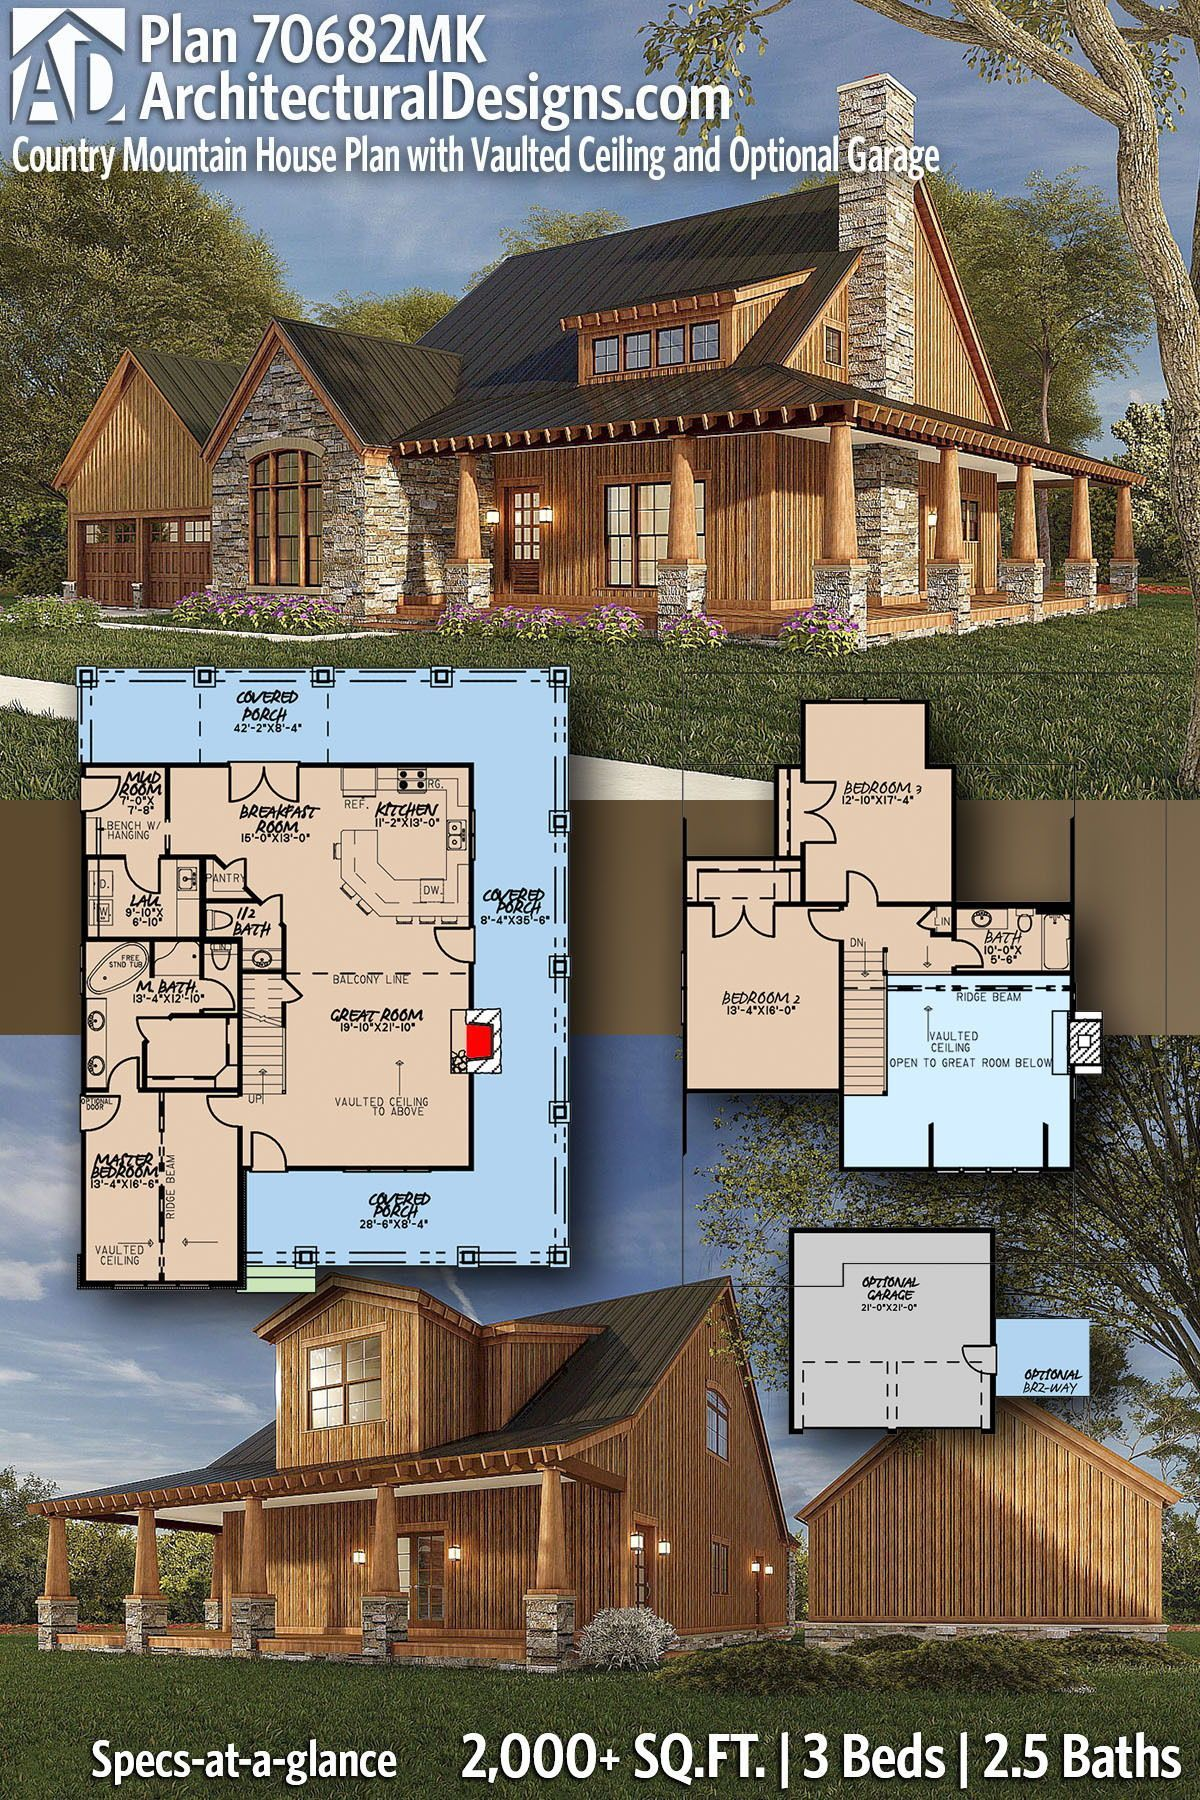 Plan 70682mk Country Mountain House Plan With Vaulted Ceiling And Optional Garage In 2021 Mountain House Plans Barn House Plans House Plans